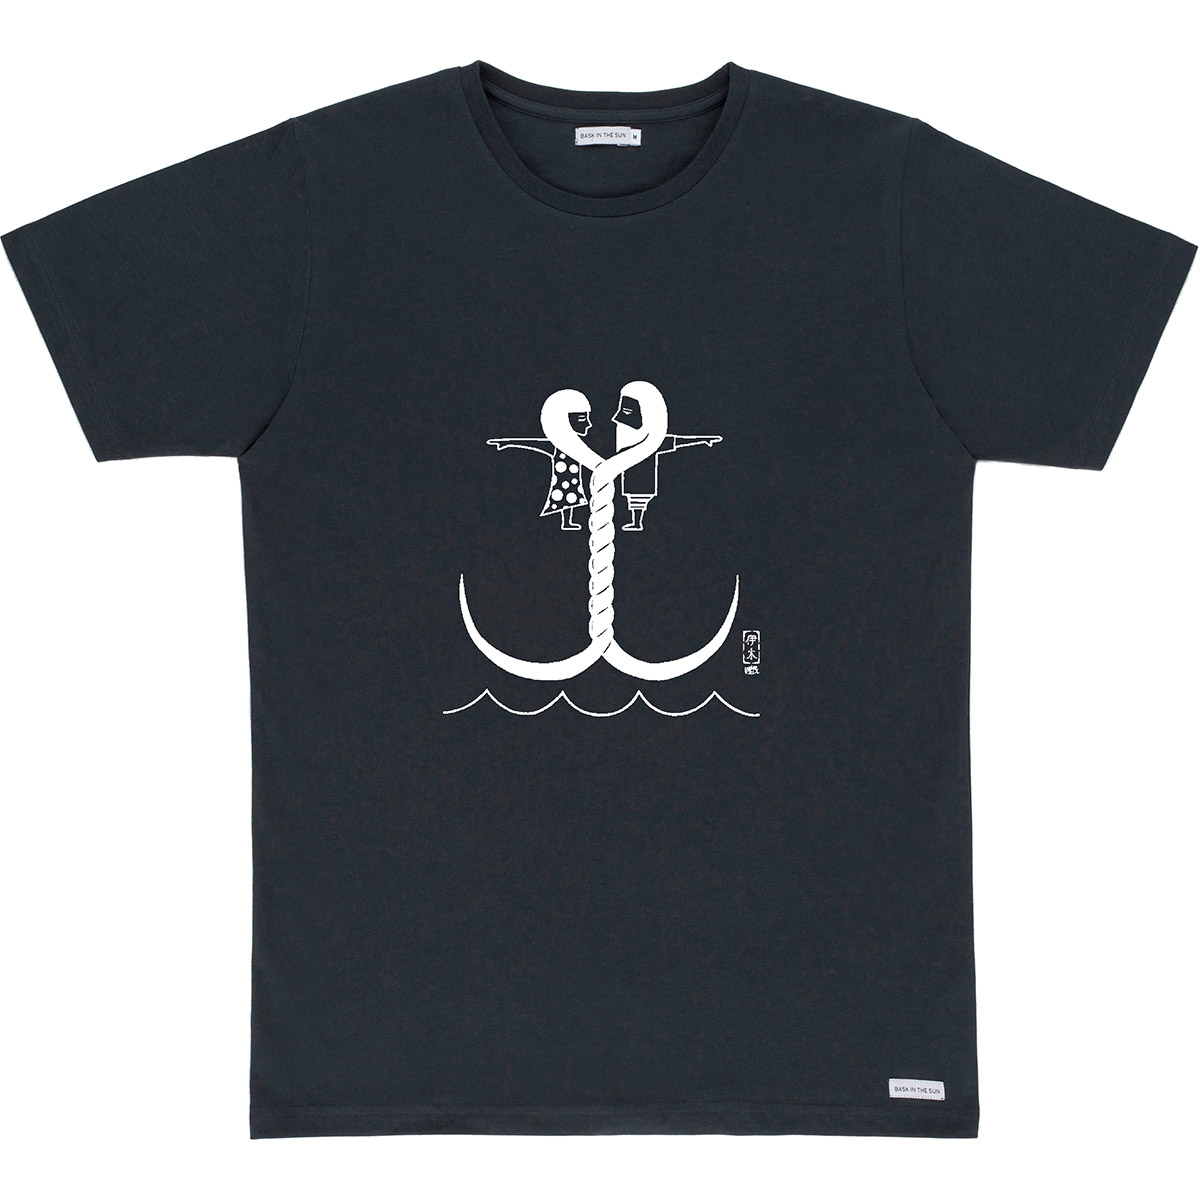 Bask in the Sun - T-shirt en coton bio black amour